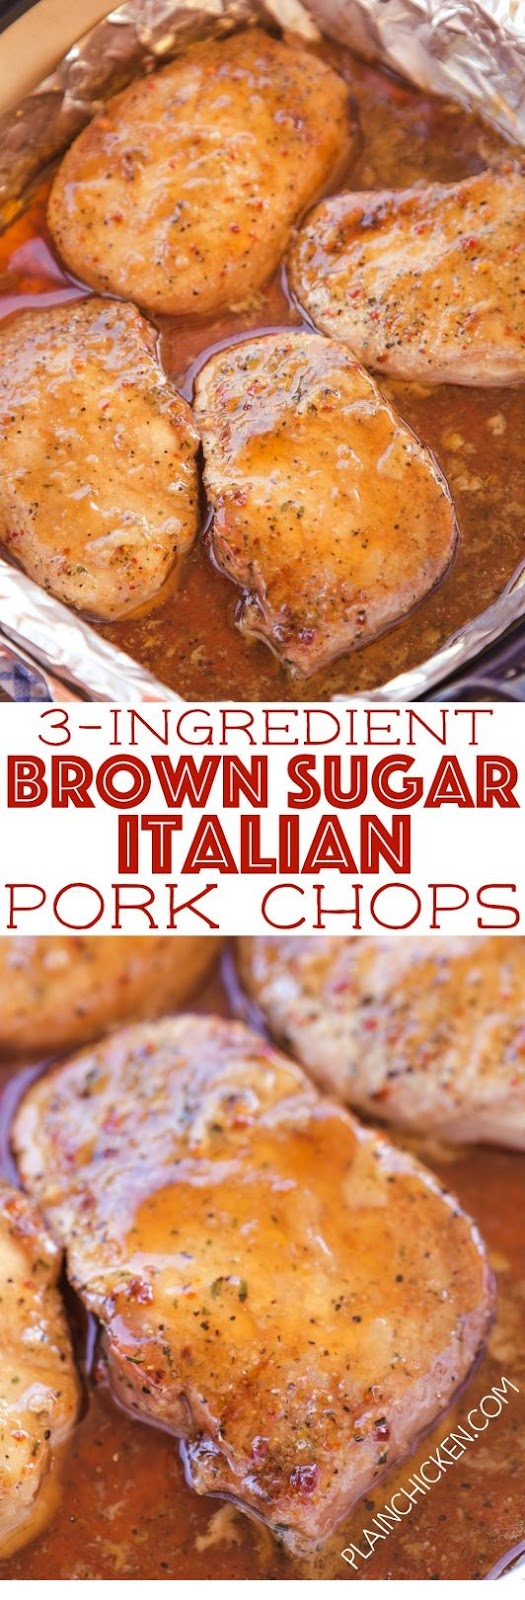 3-Ingredient Brown Sugar Italian Pork Chops